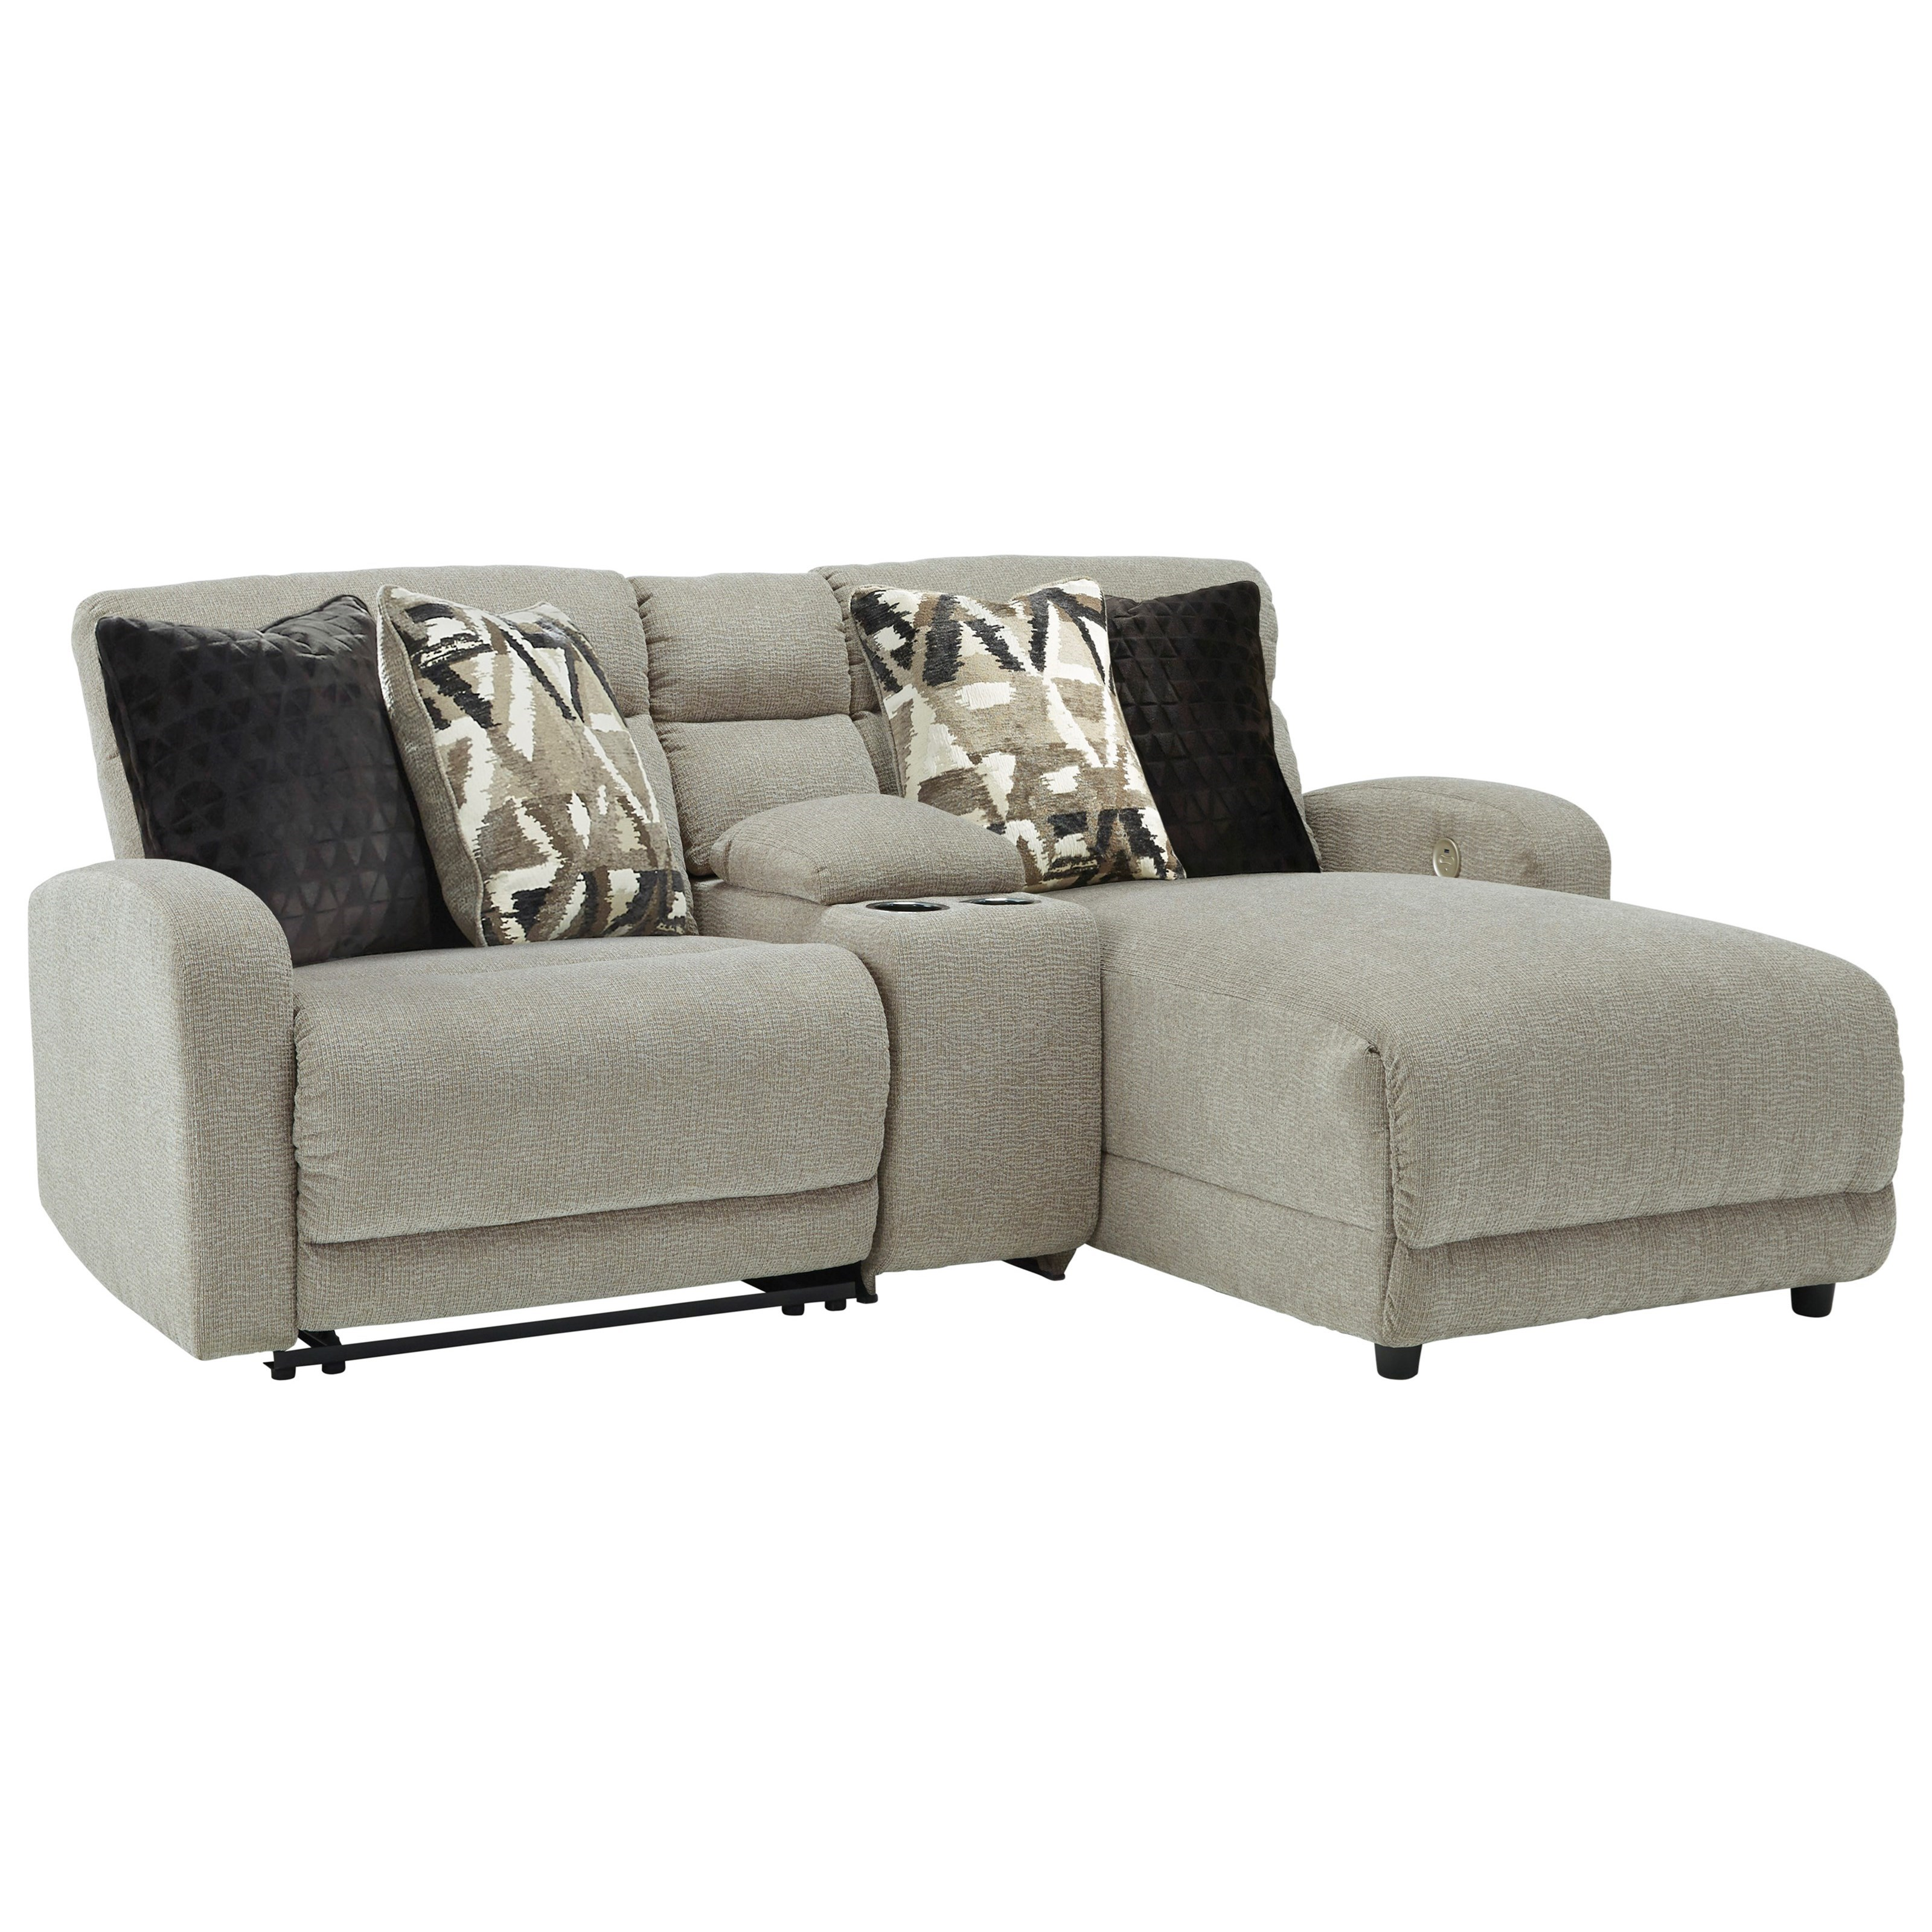 Colleyville 3-Piece Power Recl Sectional with Chaise by Signature Design by Ashley at Zak's Warehouse Clearance Center